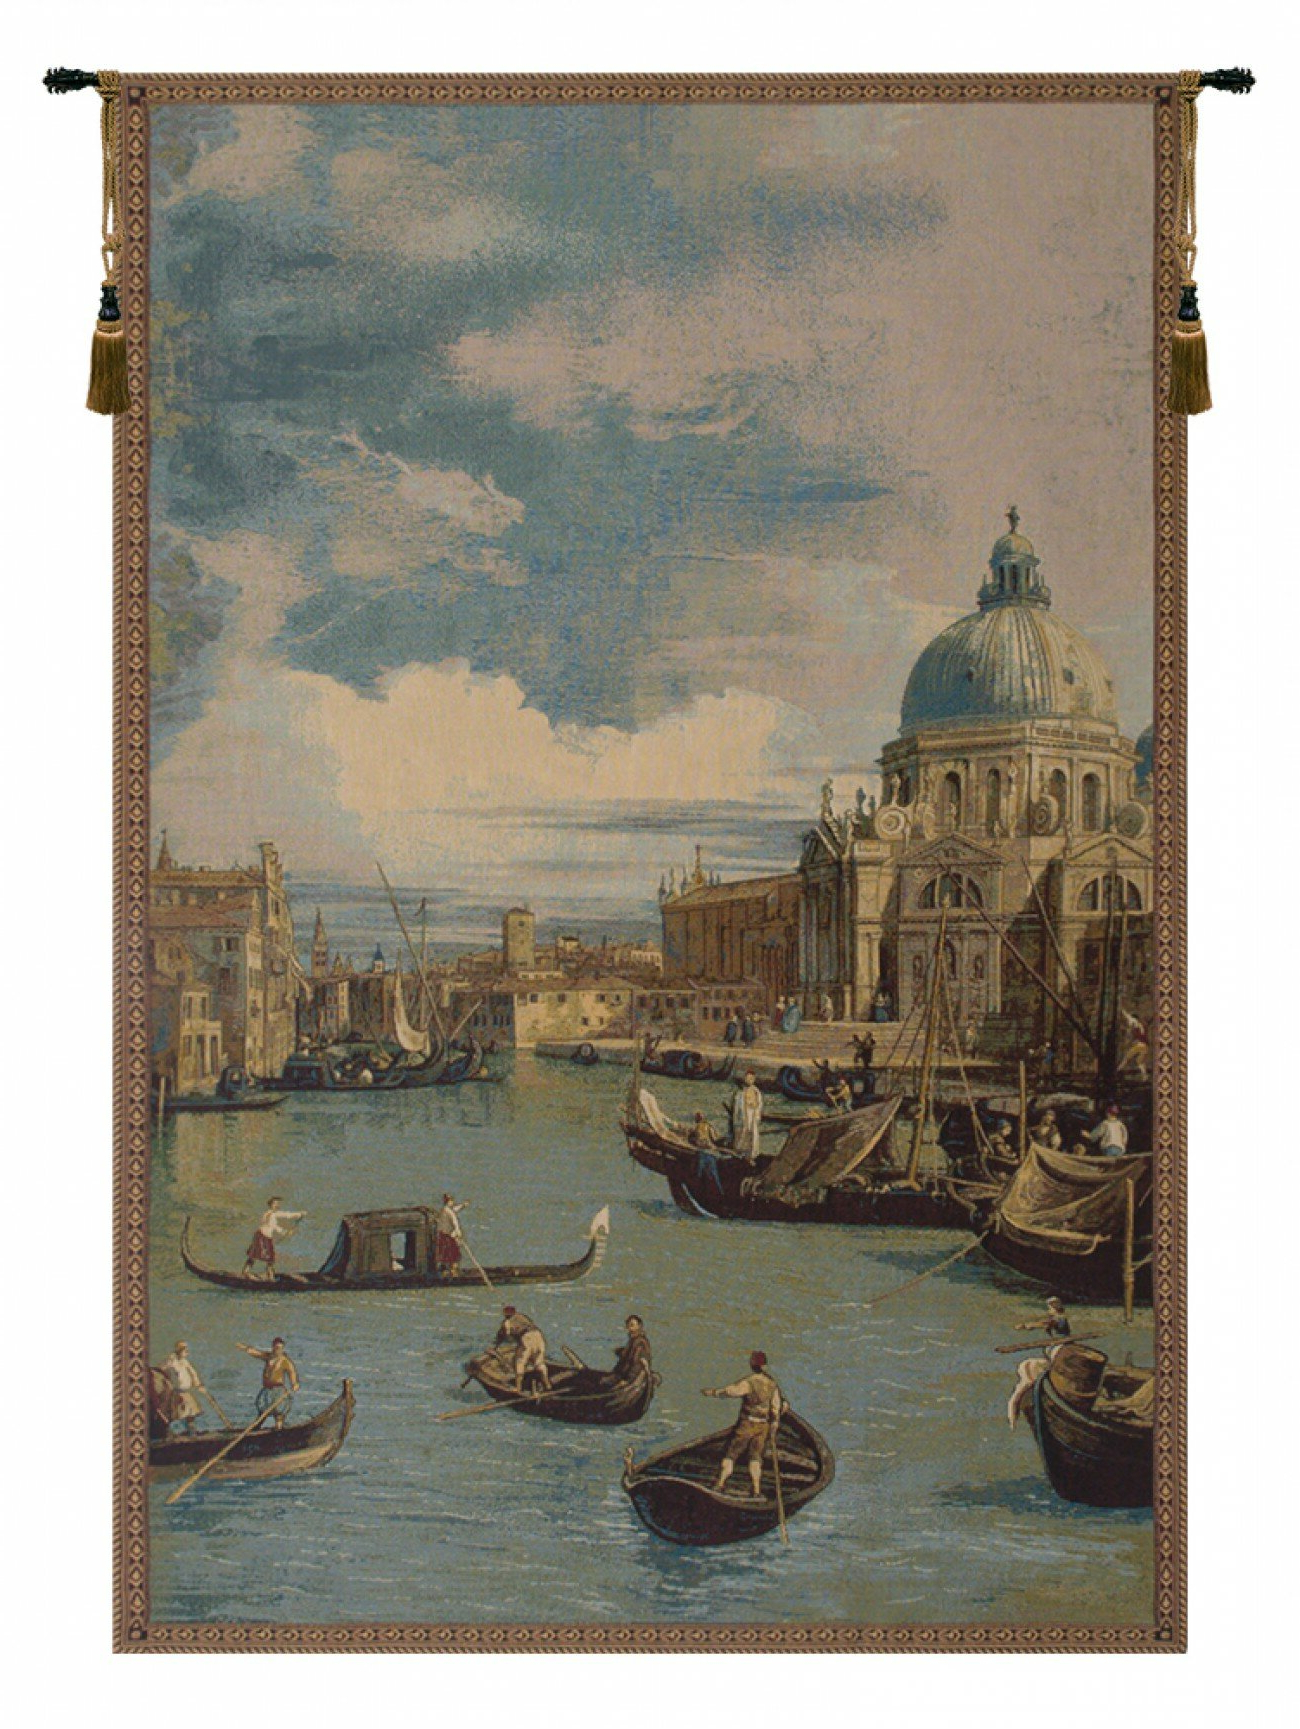 Blended Fabric Bellagio Scalinata Wall Hangings Regarding 2020 Italian Wall Hanging (View 9 of 20)